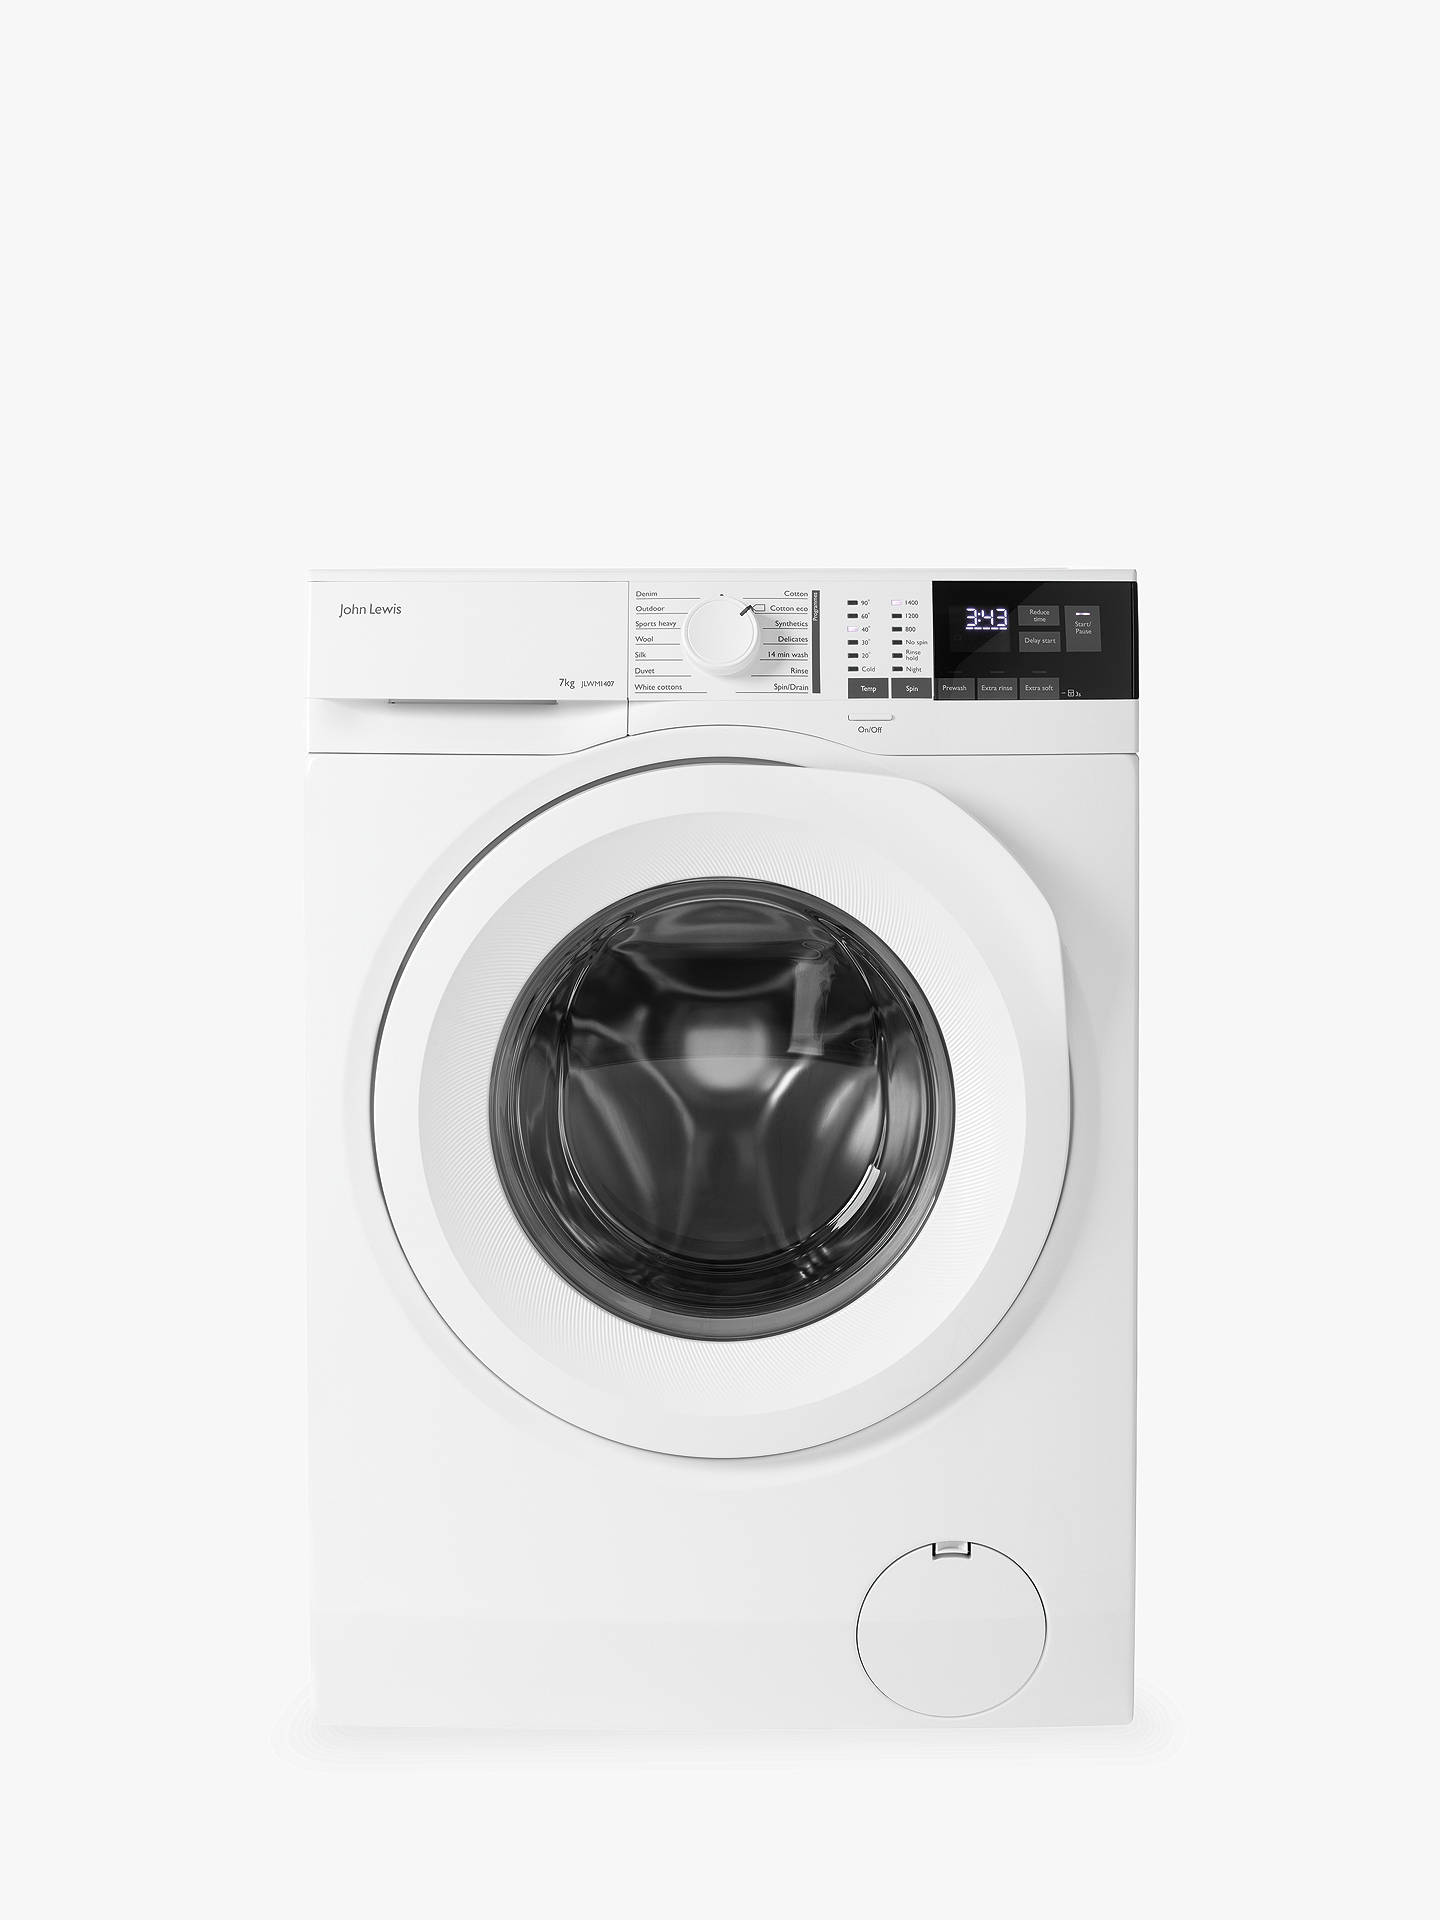 095c99bbd45 Buy John Lewis   Partners JLWM1407 Freestanding Washing Machine